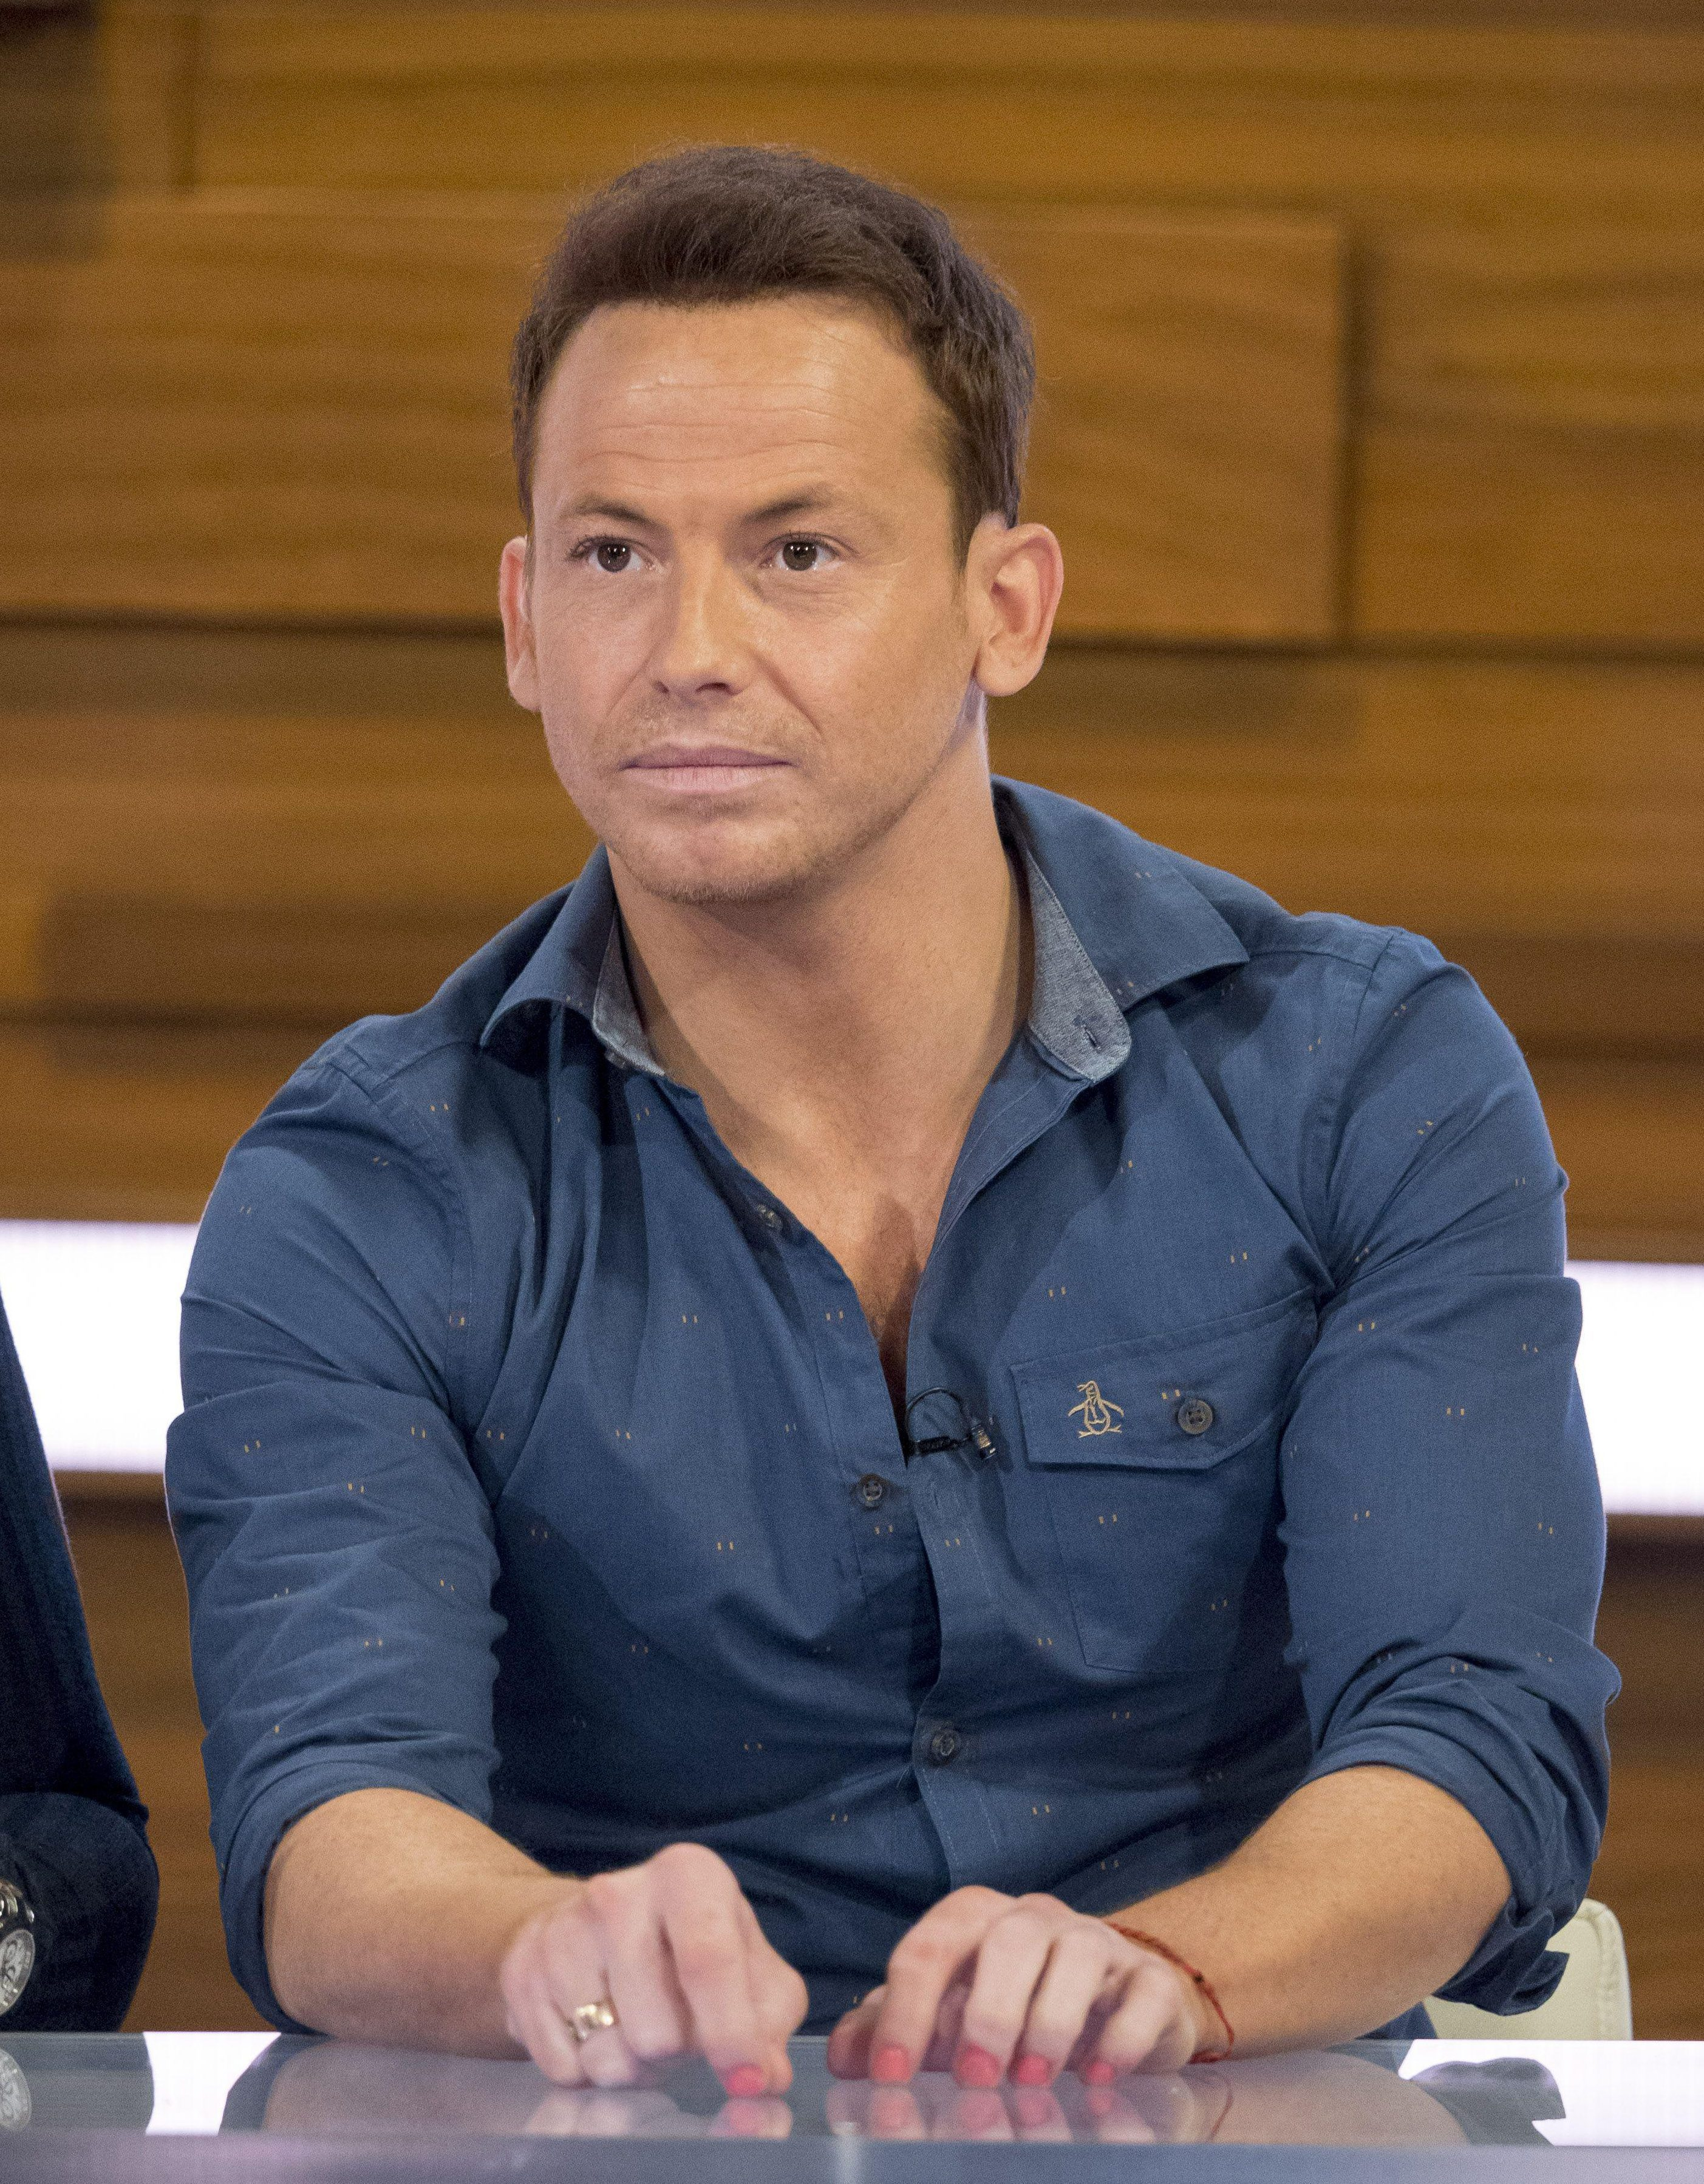 Who is Joe Swash? Extra Camp presenter, Stacey Solomon's boyfriend and I'm A Celebrity 2008 champion